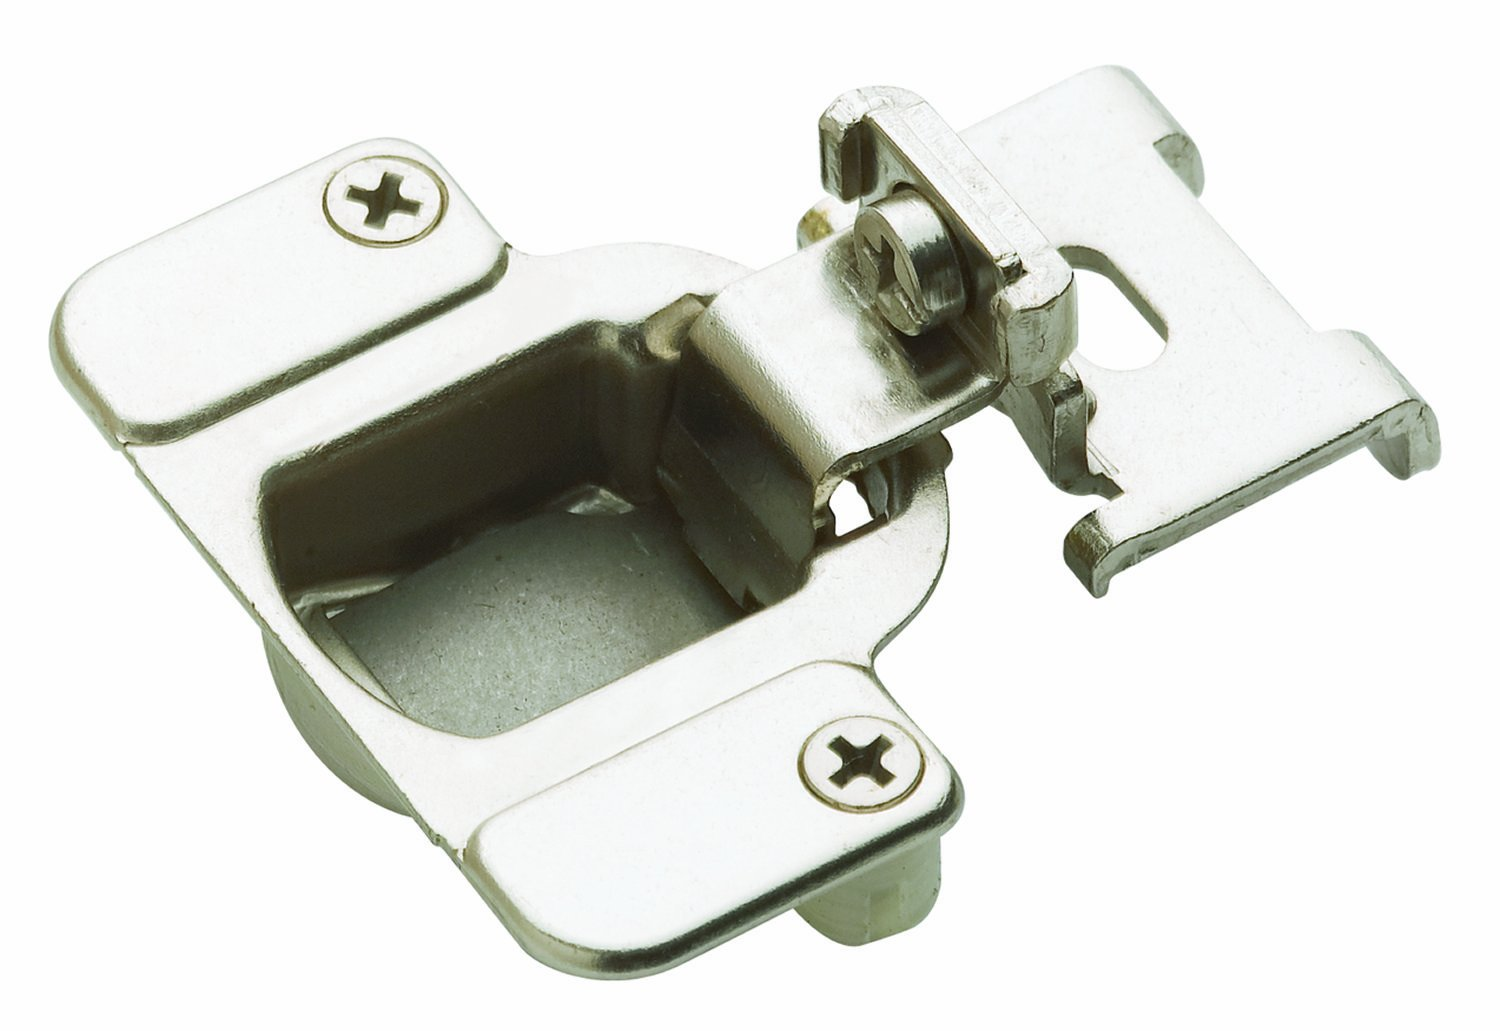 Amerock BP2811I1214 Matrix Concealed Hinge 1-7/8in(48mm) Hole Patern Hinge with 3/8in(10mm) Overlay - Nickel - Cabinet And Furniture Hinges - Amazon.com  sc 1 st  Amazon.com & Amerock BP2811I1214 Matrix Concealed Hinge 1-7/8in(48mm) Hole ...